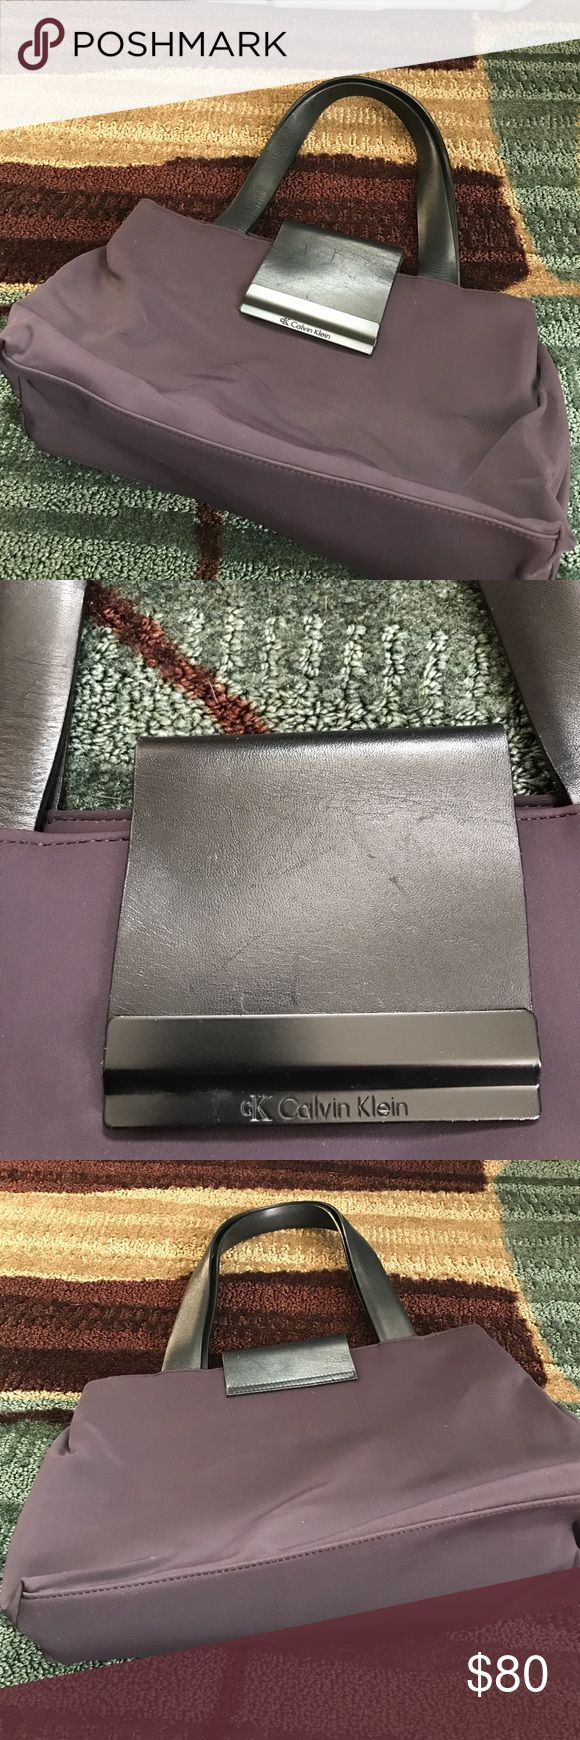 """Beautiful light weight bag This bag is so nice light weight leather straps zip pocket inside interior like new 15"""" x 9"""" deep purple color Calvin Klein Bags Shoulder Bags"""